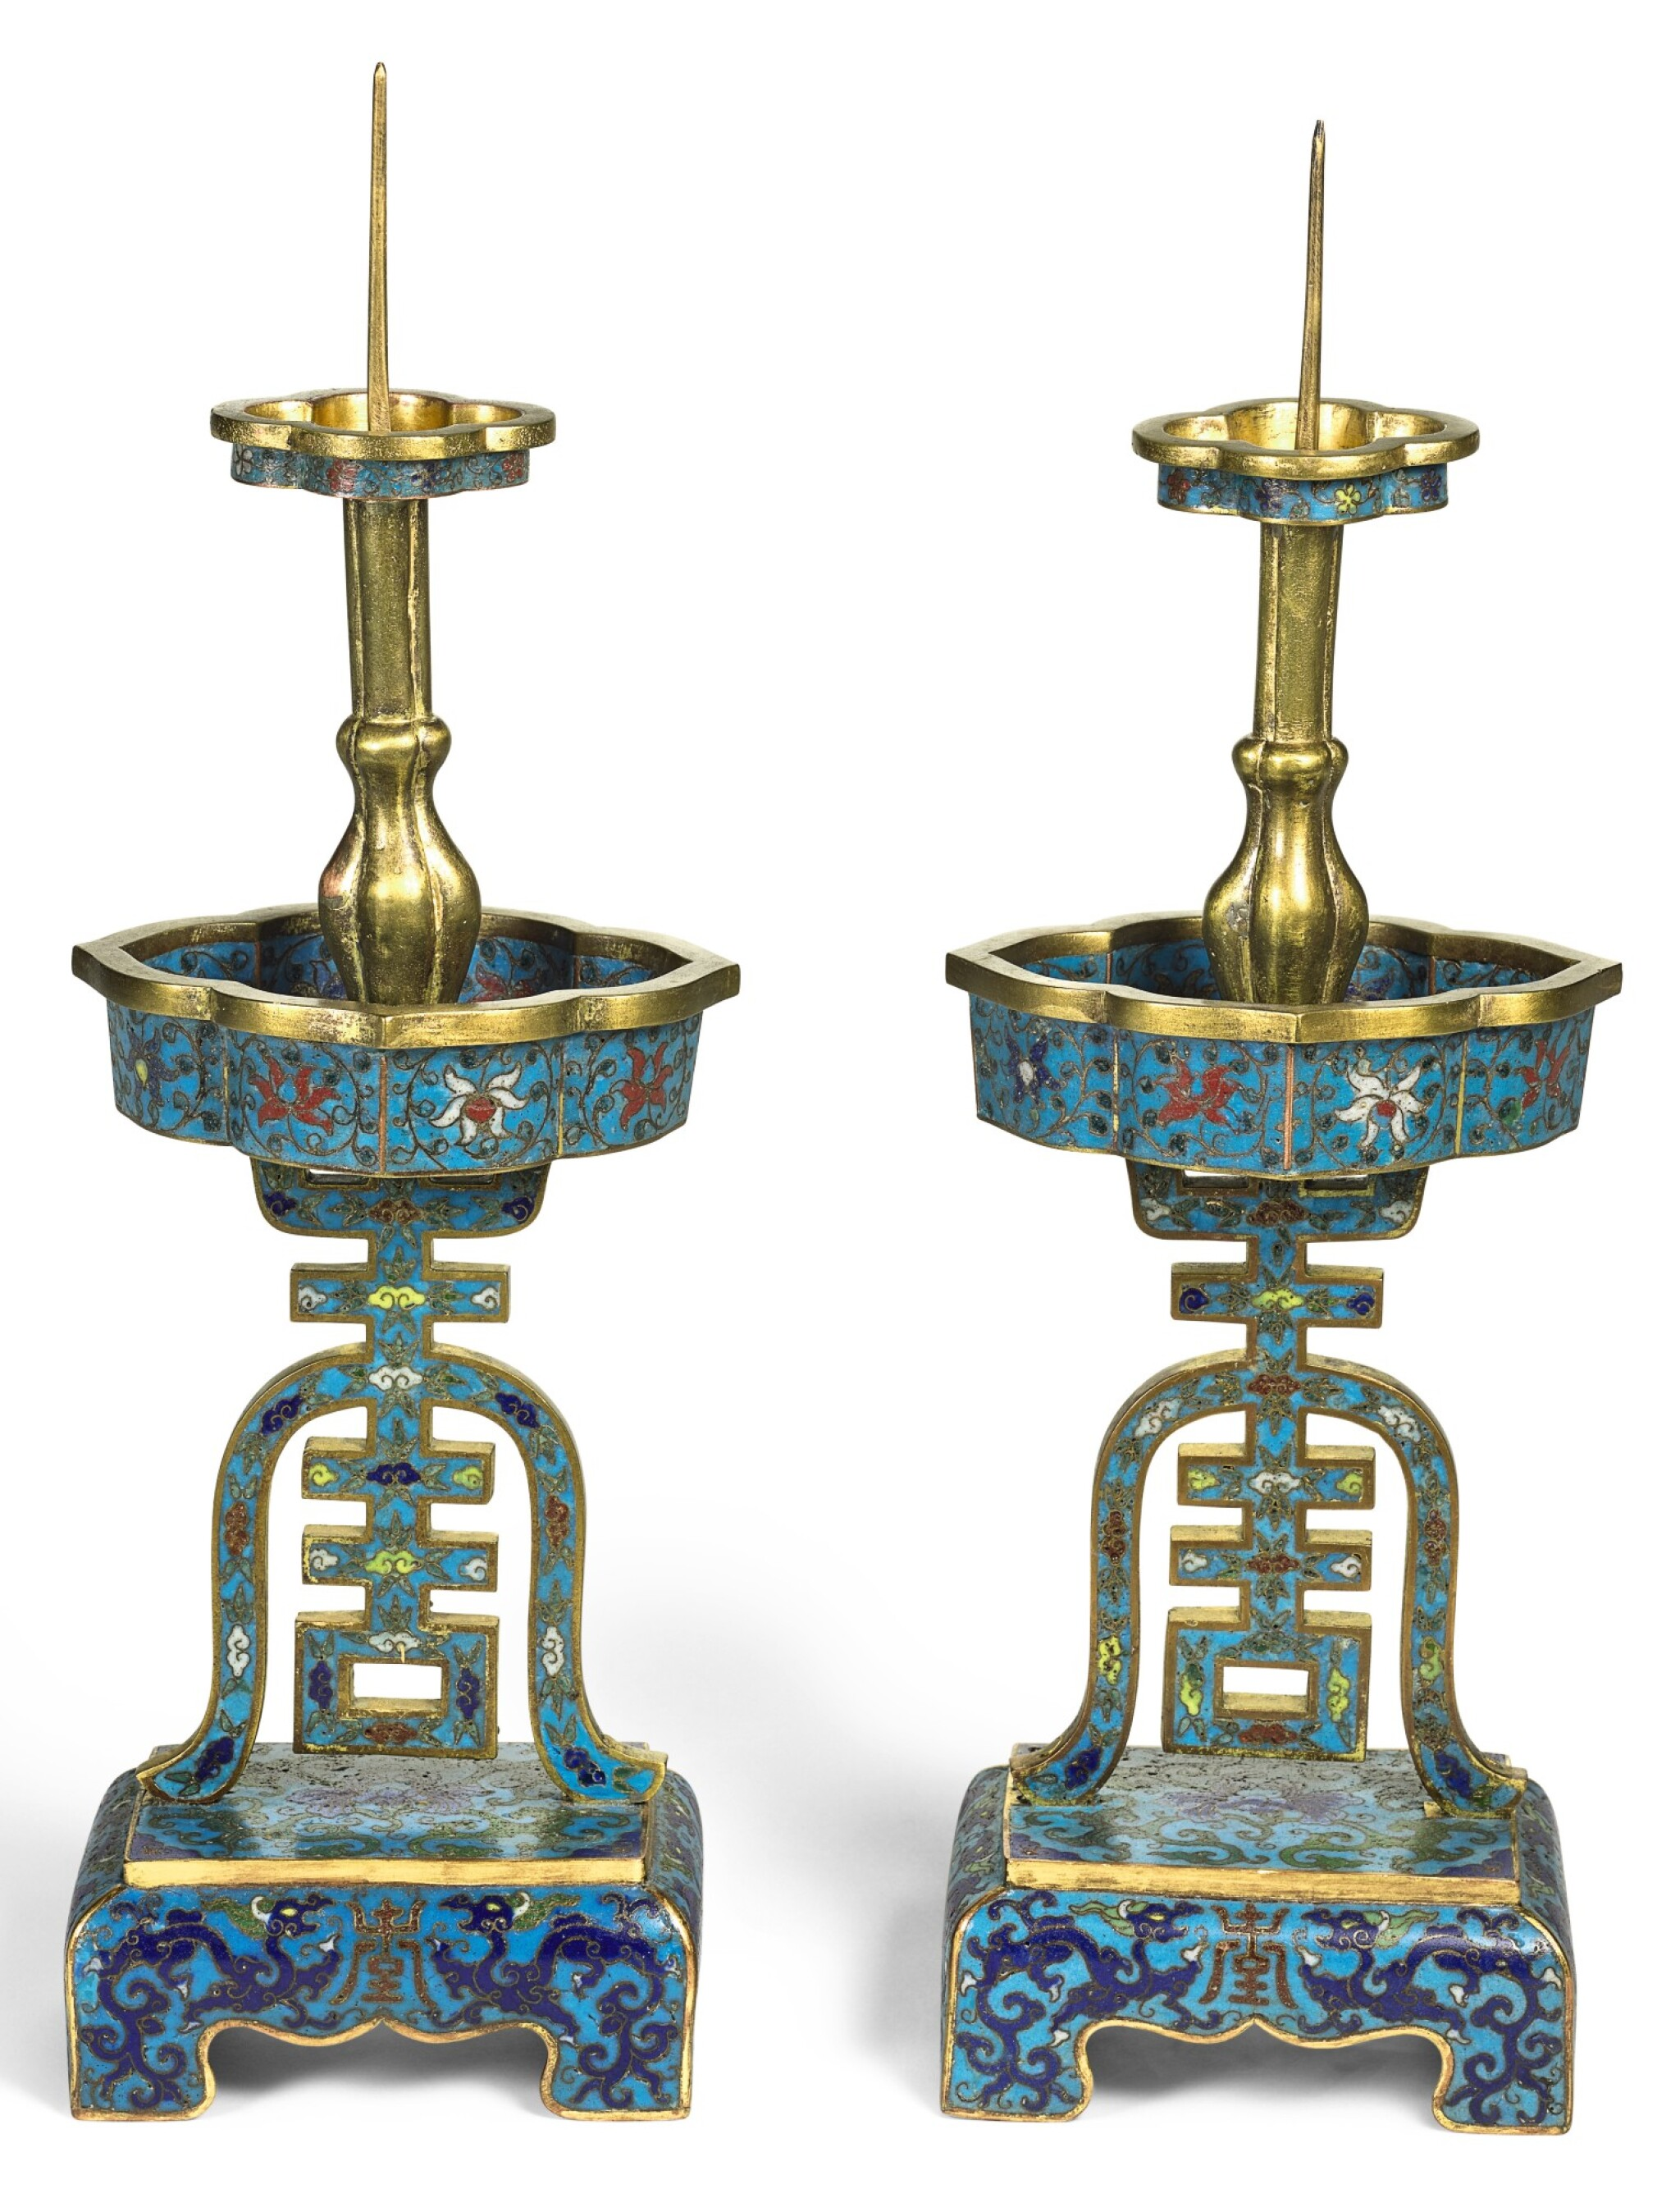 View full screen - View 1 of Lot 360. A PAIR OF CLOISONNE ENAMEL 'SHOU' CANDLESTICKS, QING DYNASTY, 17TH CENTURY | 清十七世紀 掐絲琺琅雙龍捧壽紋燭臺一對.